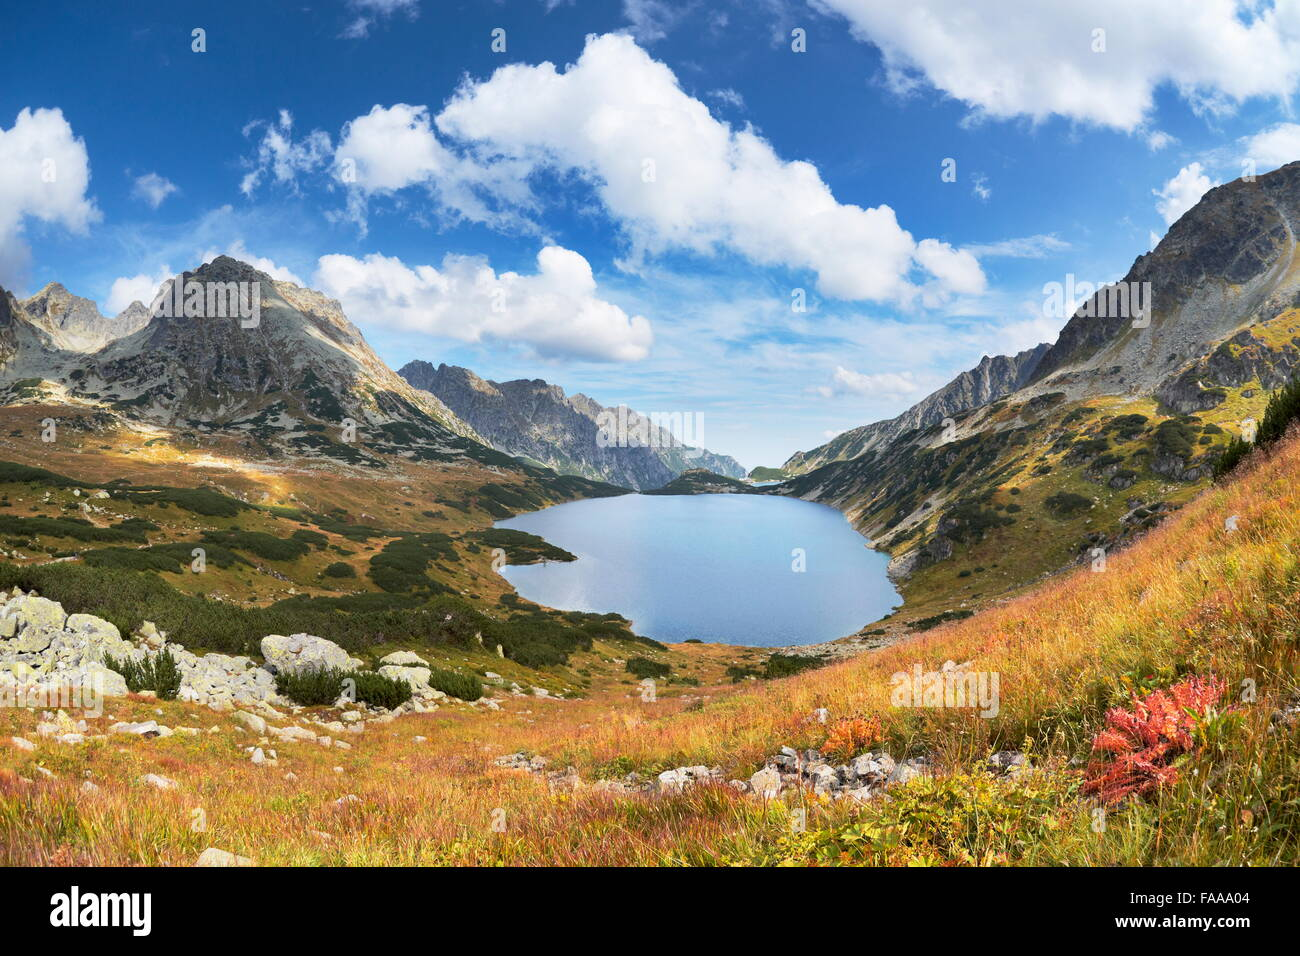 Tatra Mountains, Five Lakes Valley, Poland - Stock Image